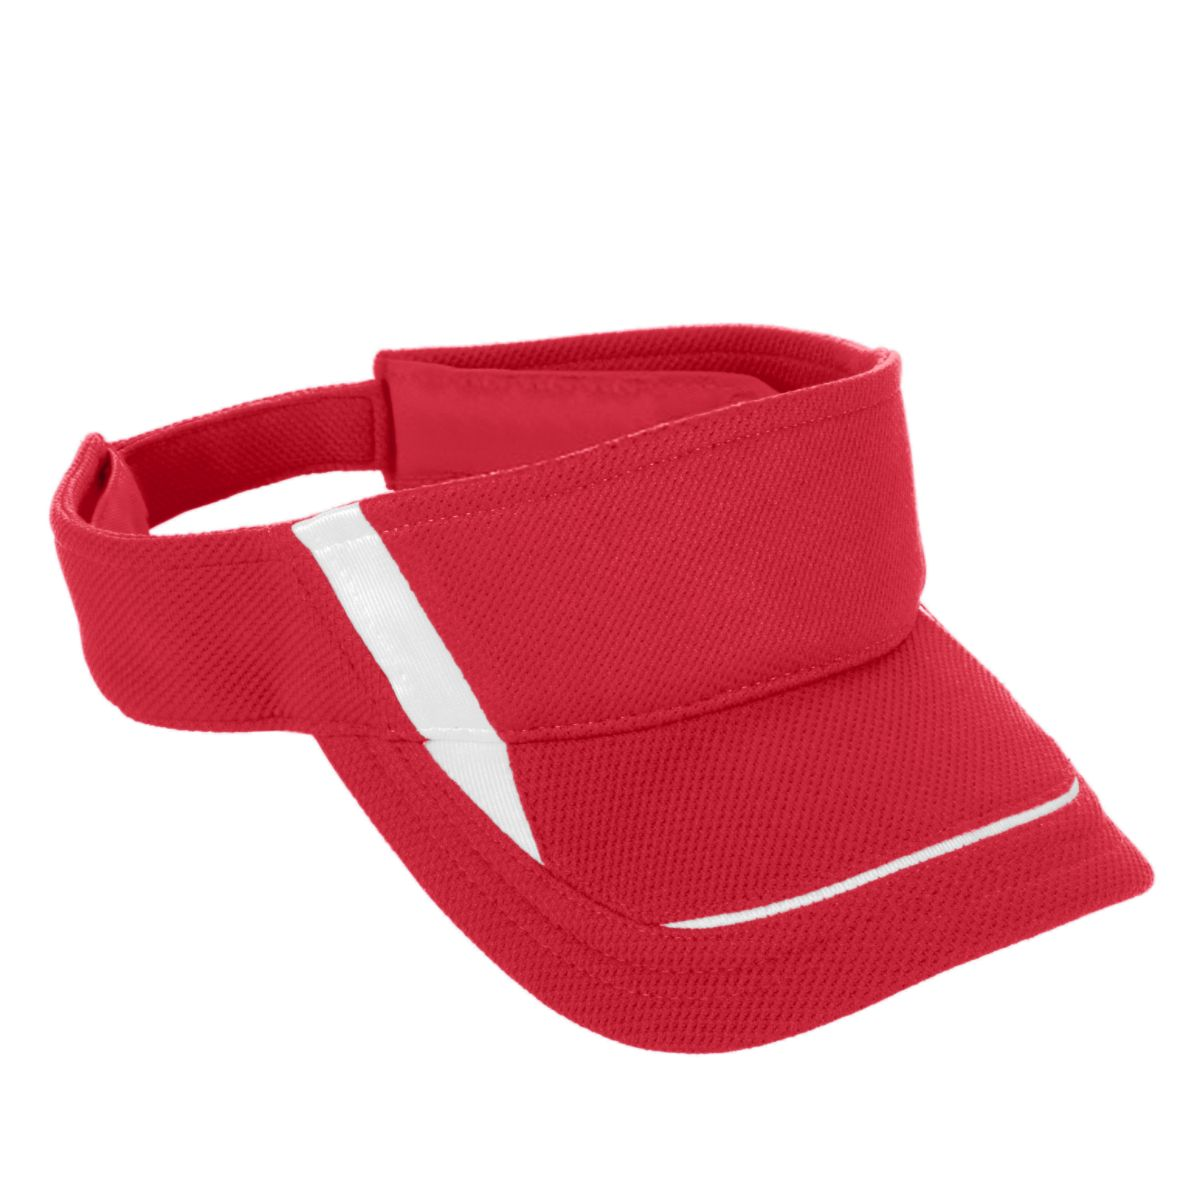 6275 Adjustable Wicking Mesh Edge Visor RED/WHITE OS